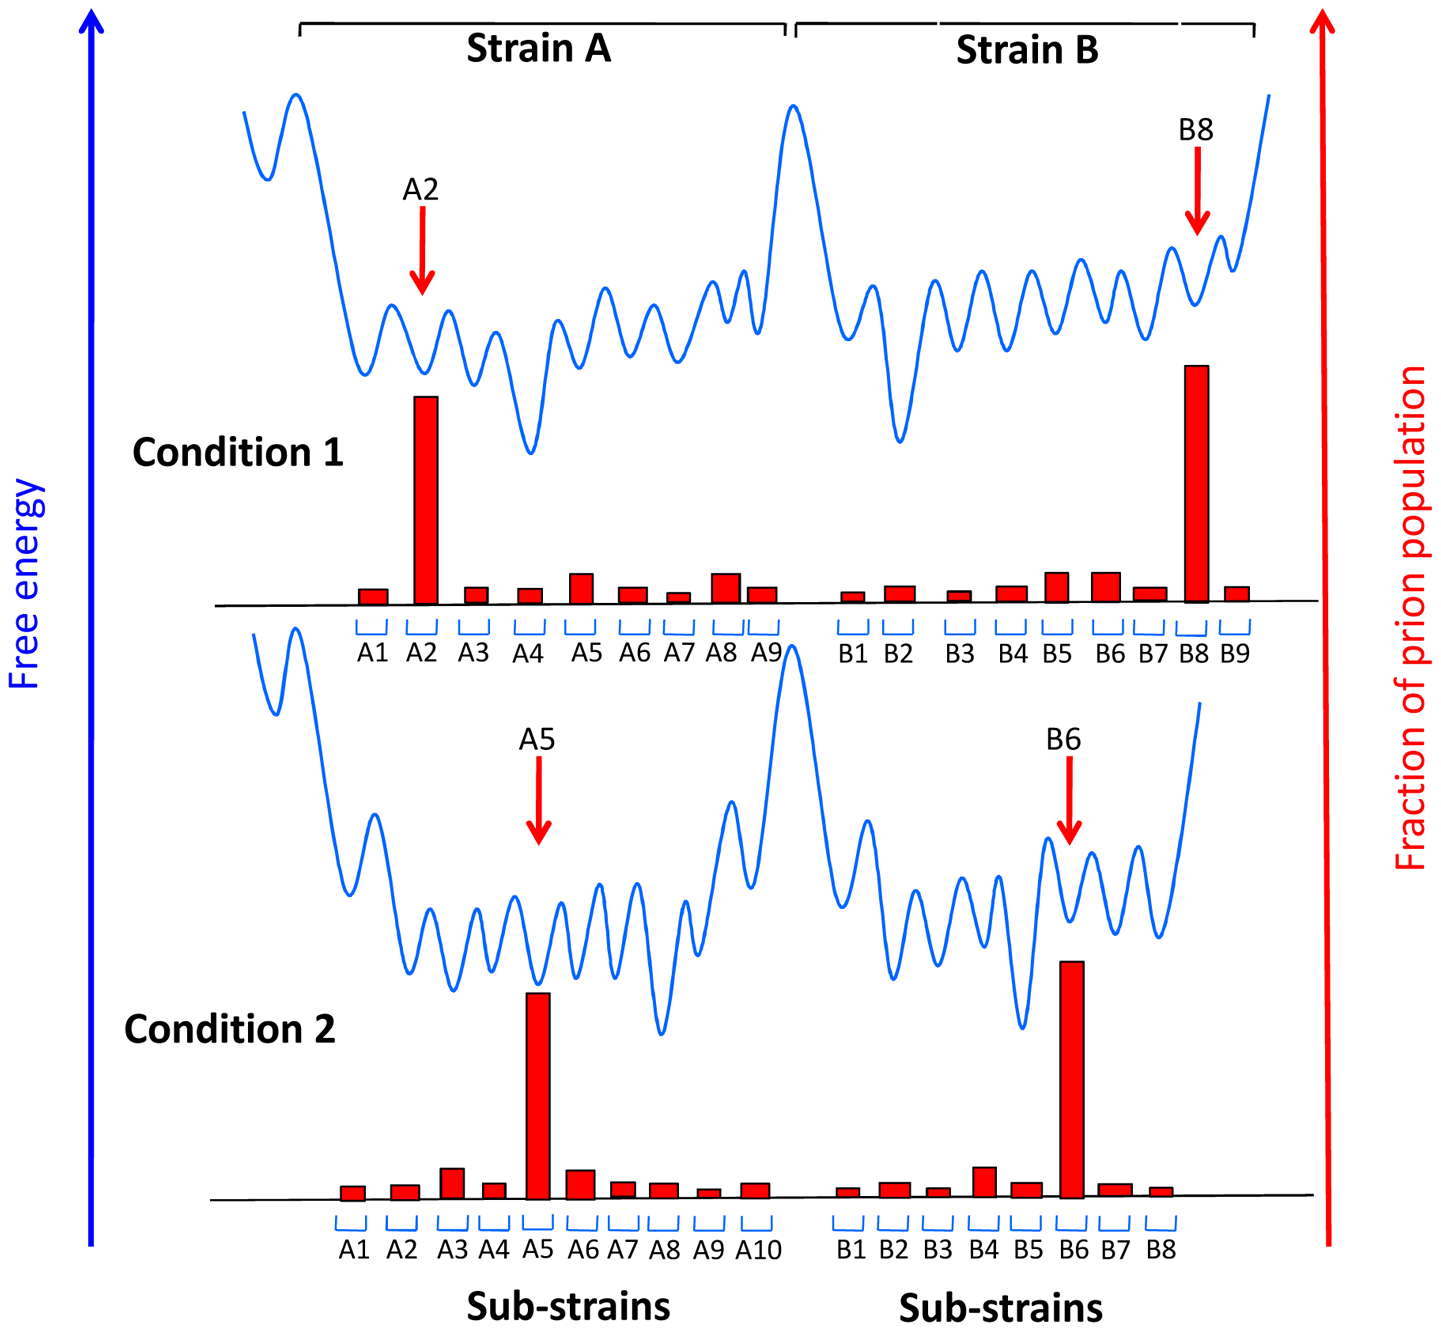 Conjectural free energy landscape for prion strains and sub-strains.